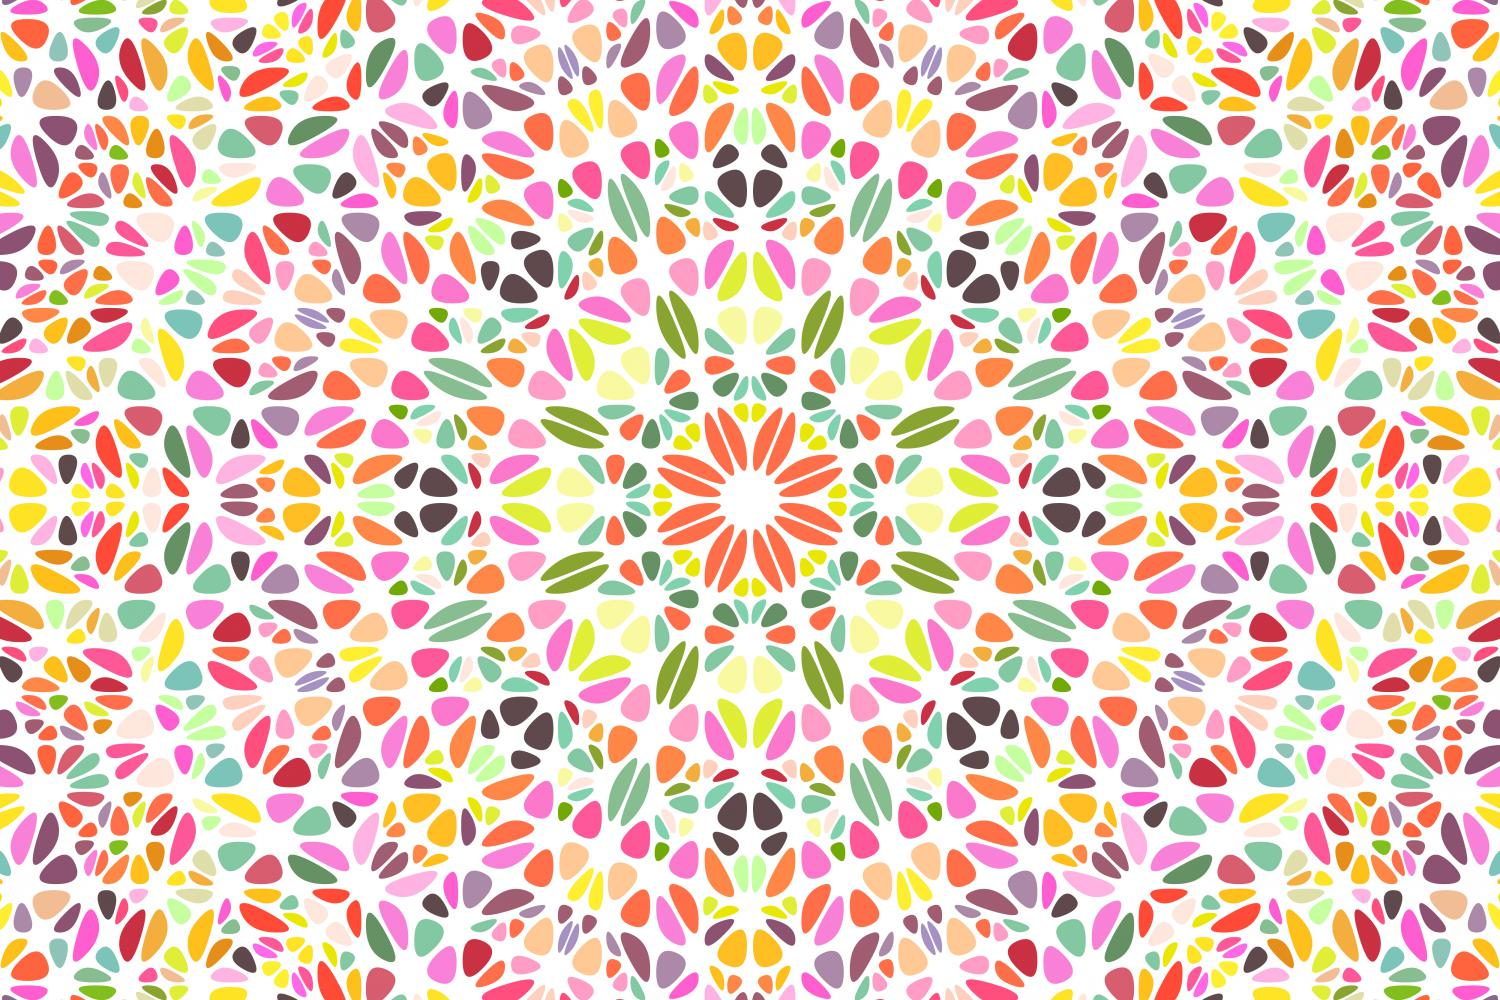 48 Floral Mandala Backgrounds example image 4